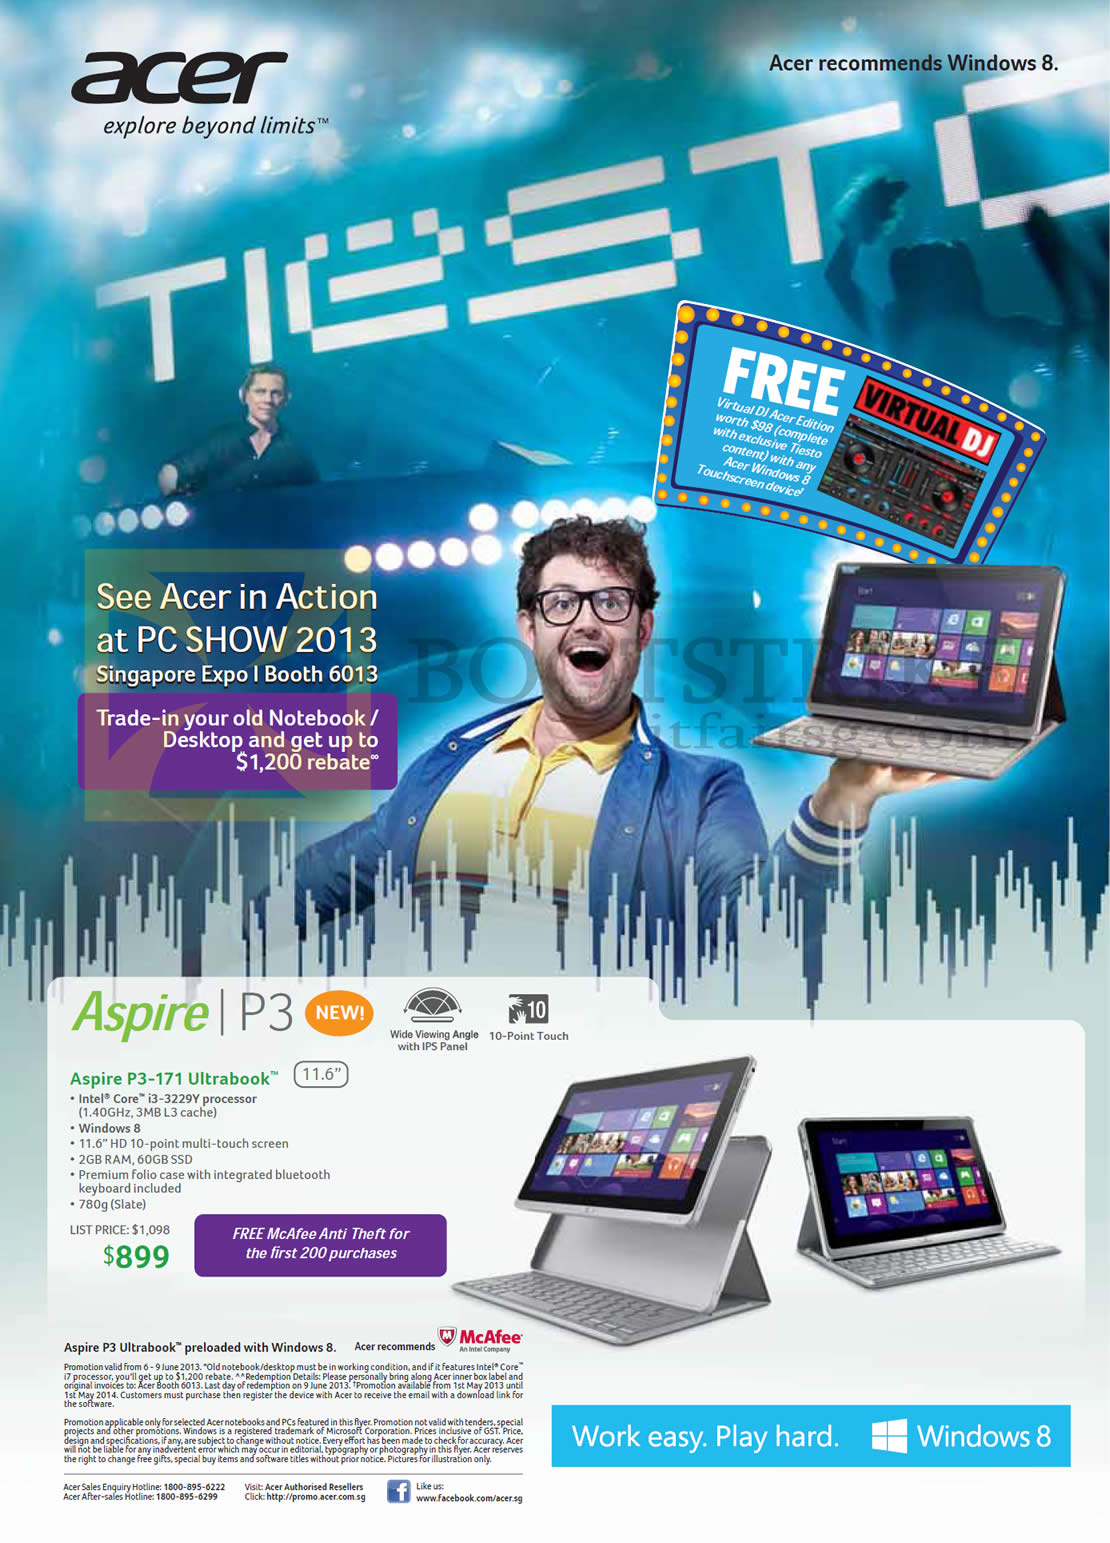 PC SHOW 2013 price list image brochure of Acer Aspire P3-171 Ultrabook Notebook